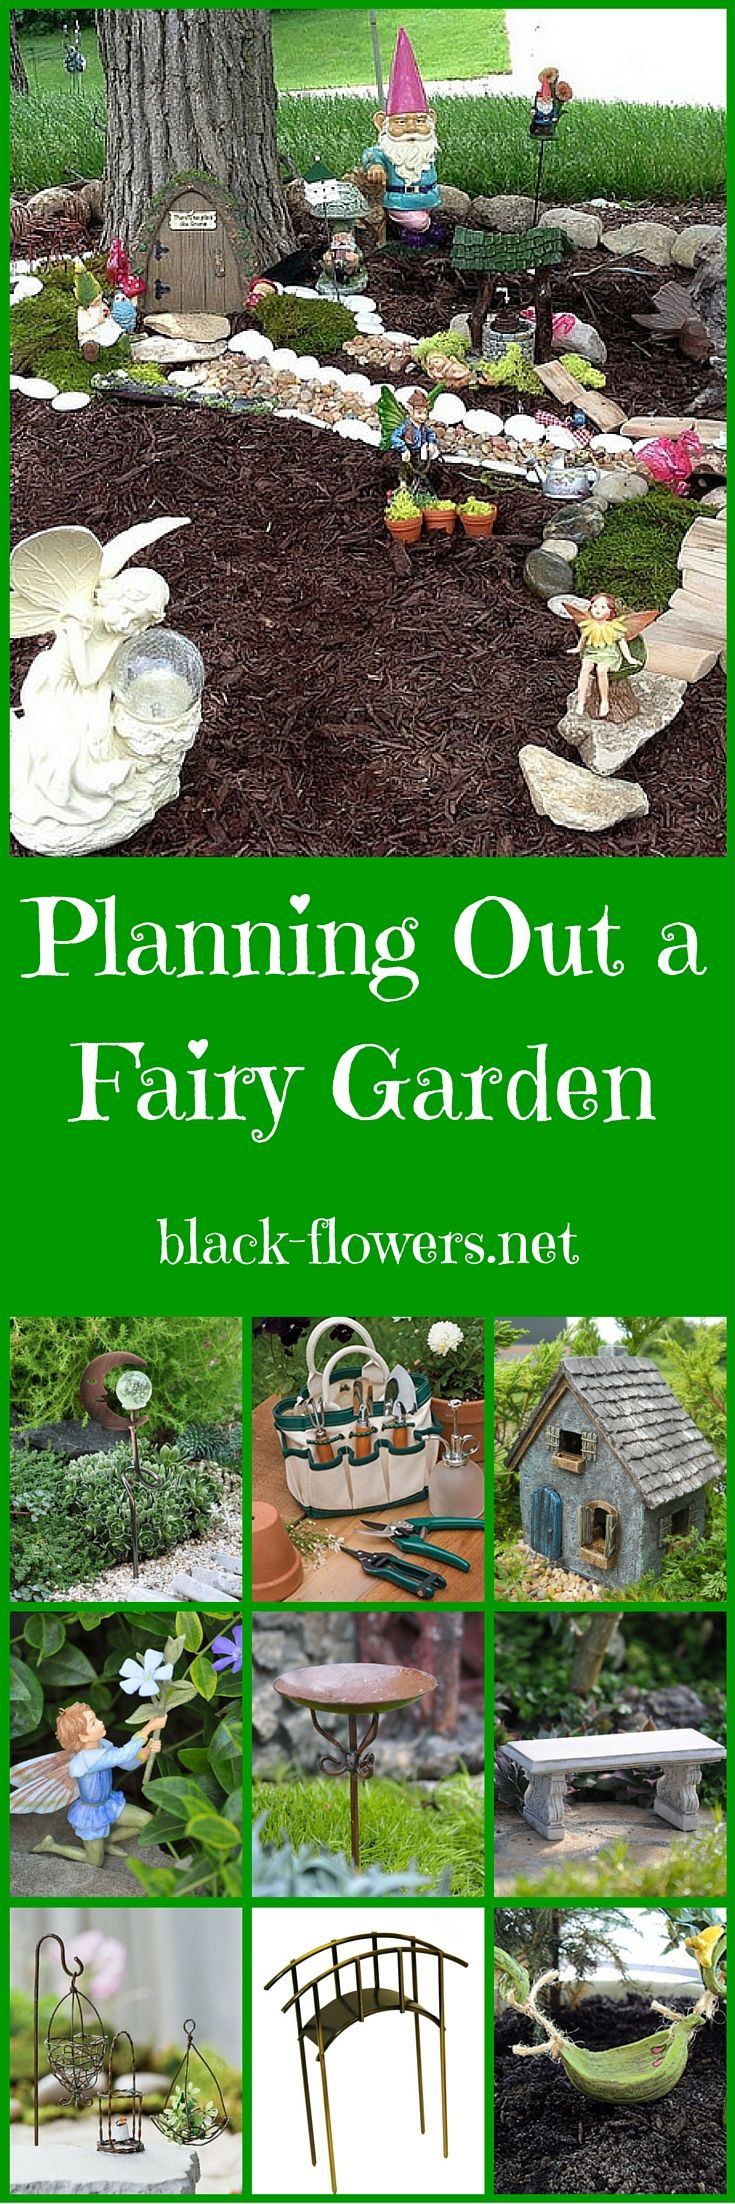 Best 25 Mini fairy garden ideas on Pinterest Mini gardens Diy